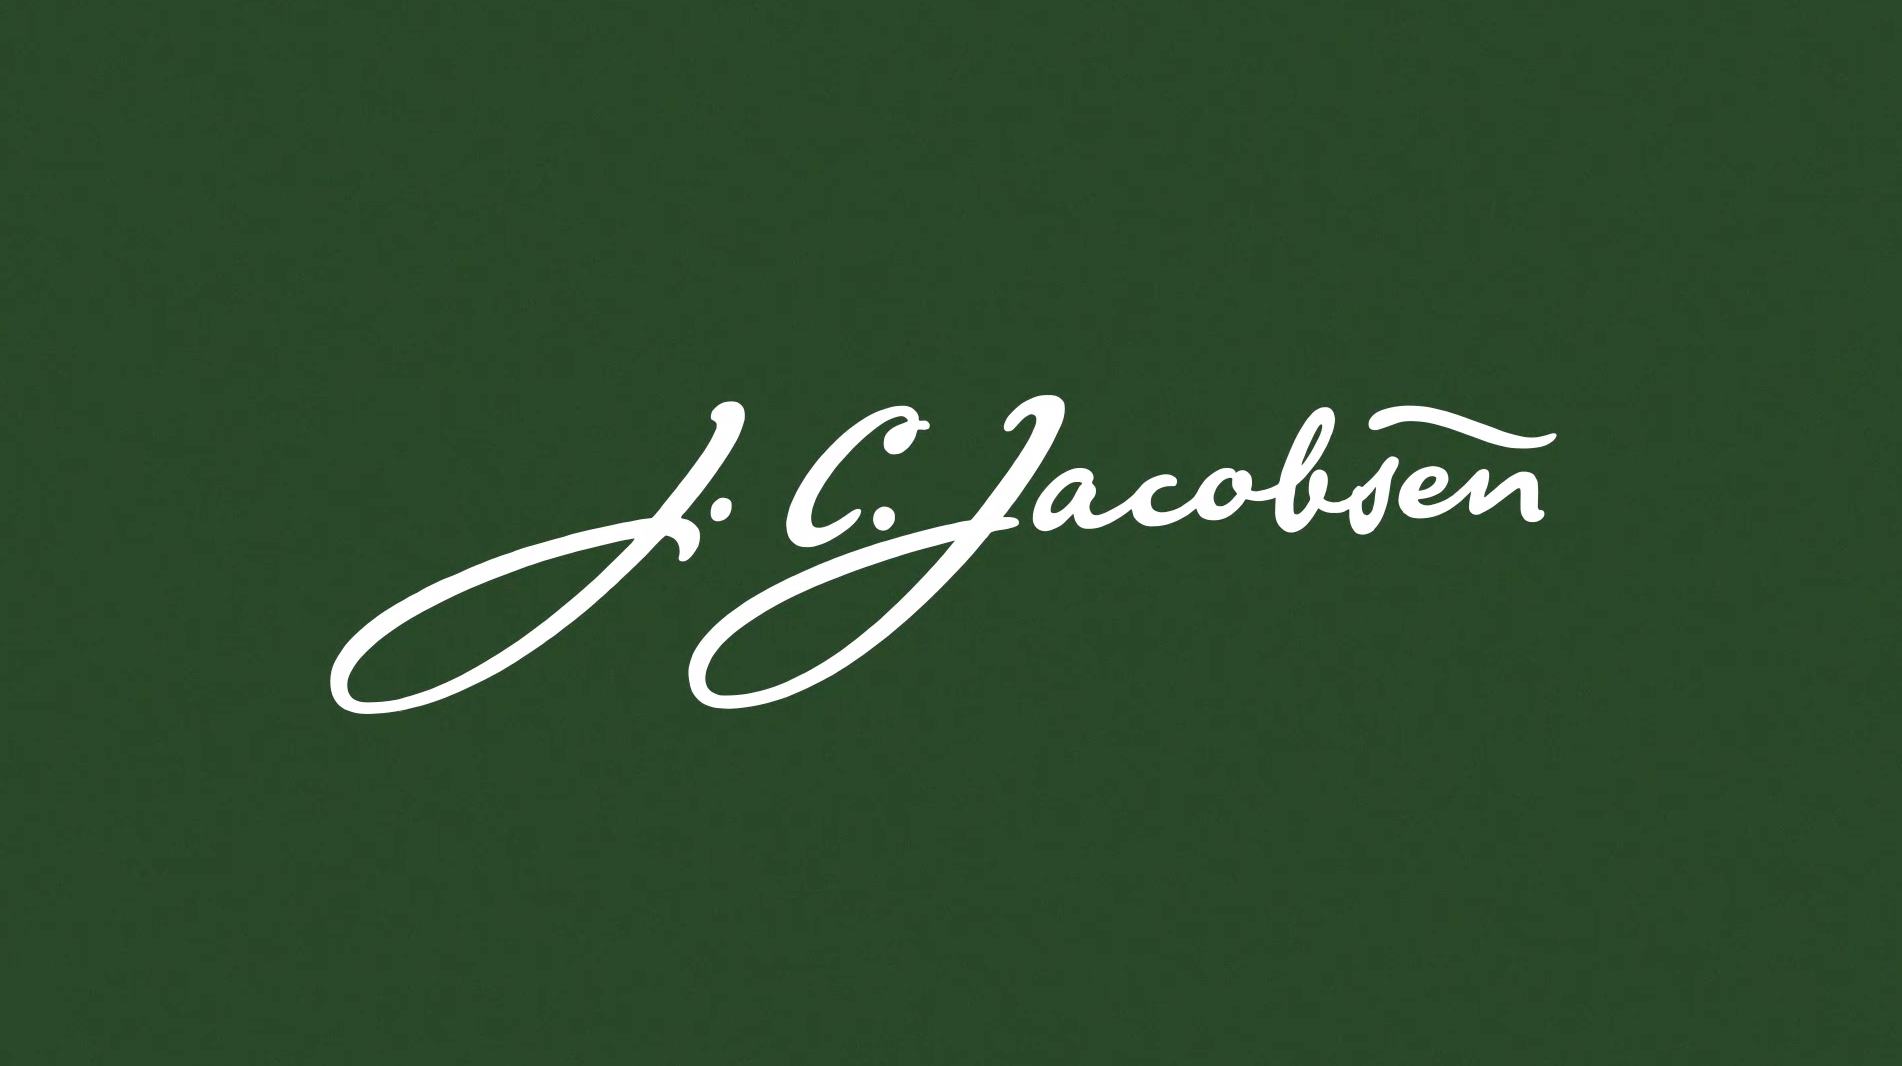 Founder JC Jacobsen signature before.